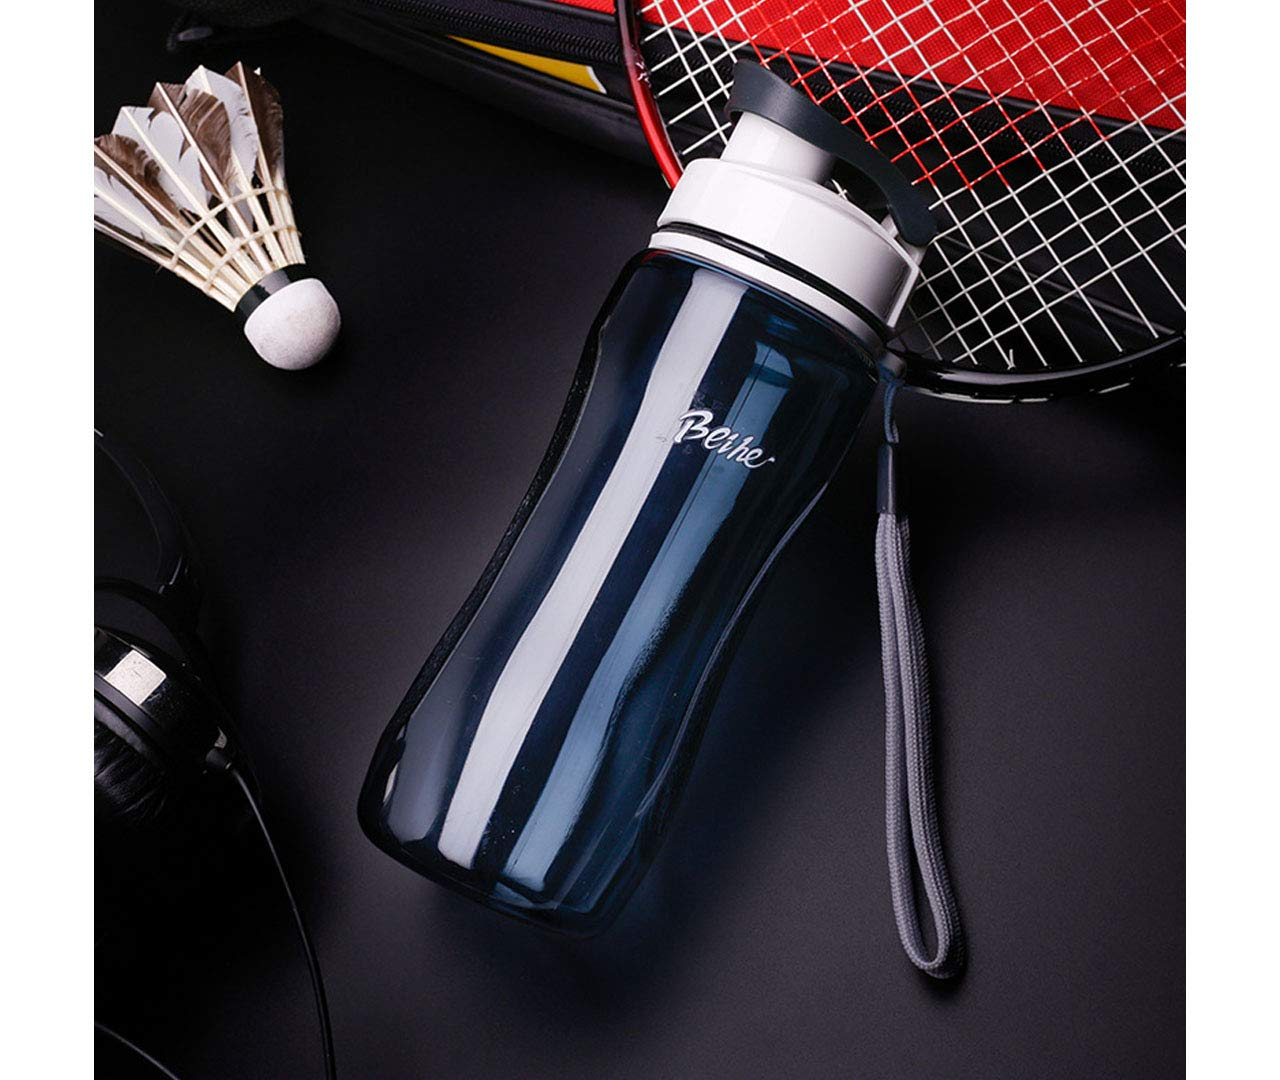 QiLi Sports Water Bottles Reusable Leak Proof Large Capacity Wide Mouth Filtered Cup